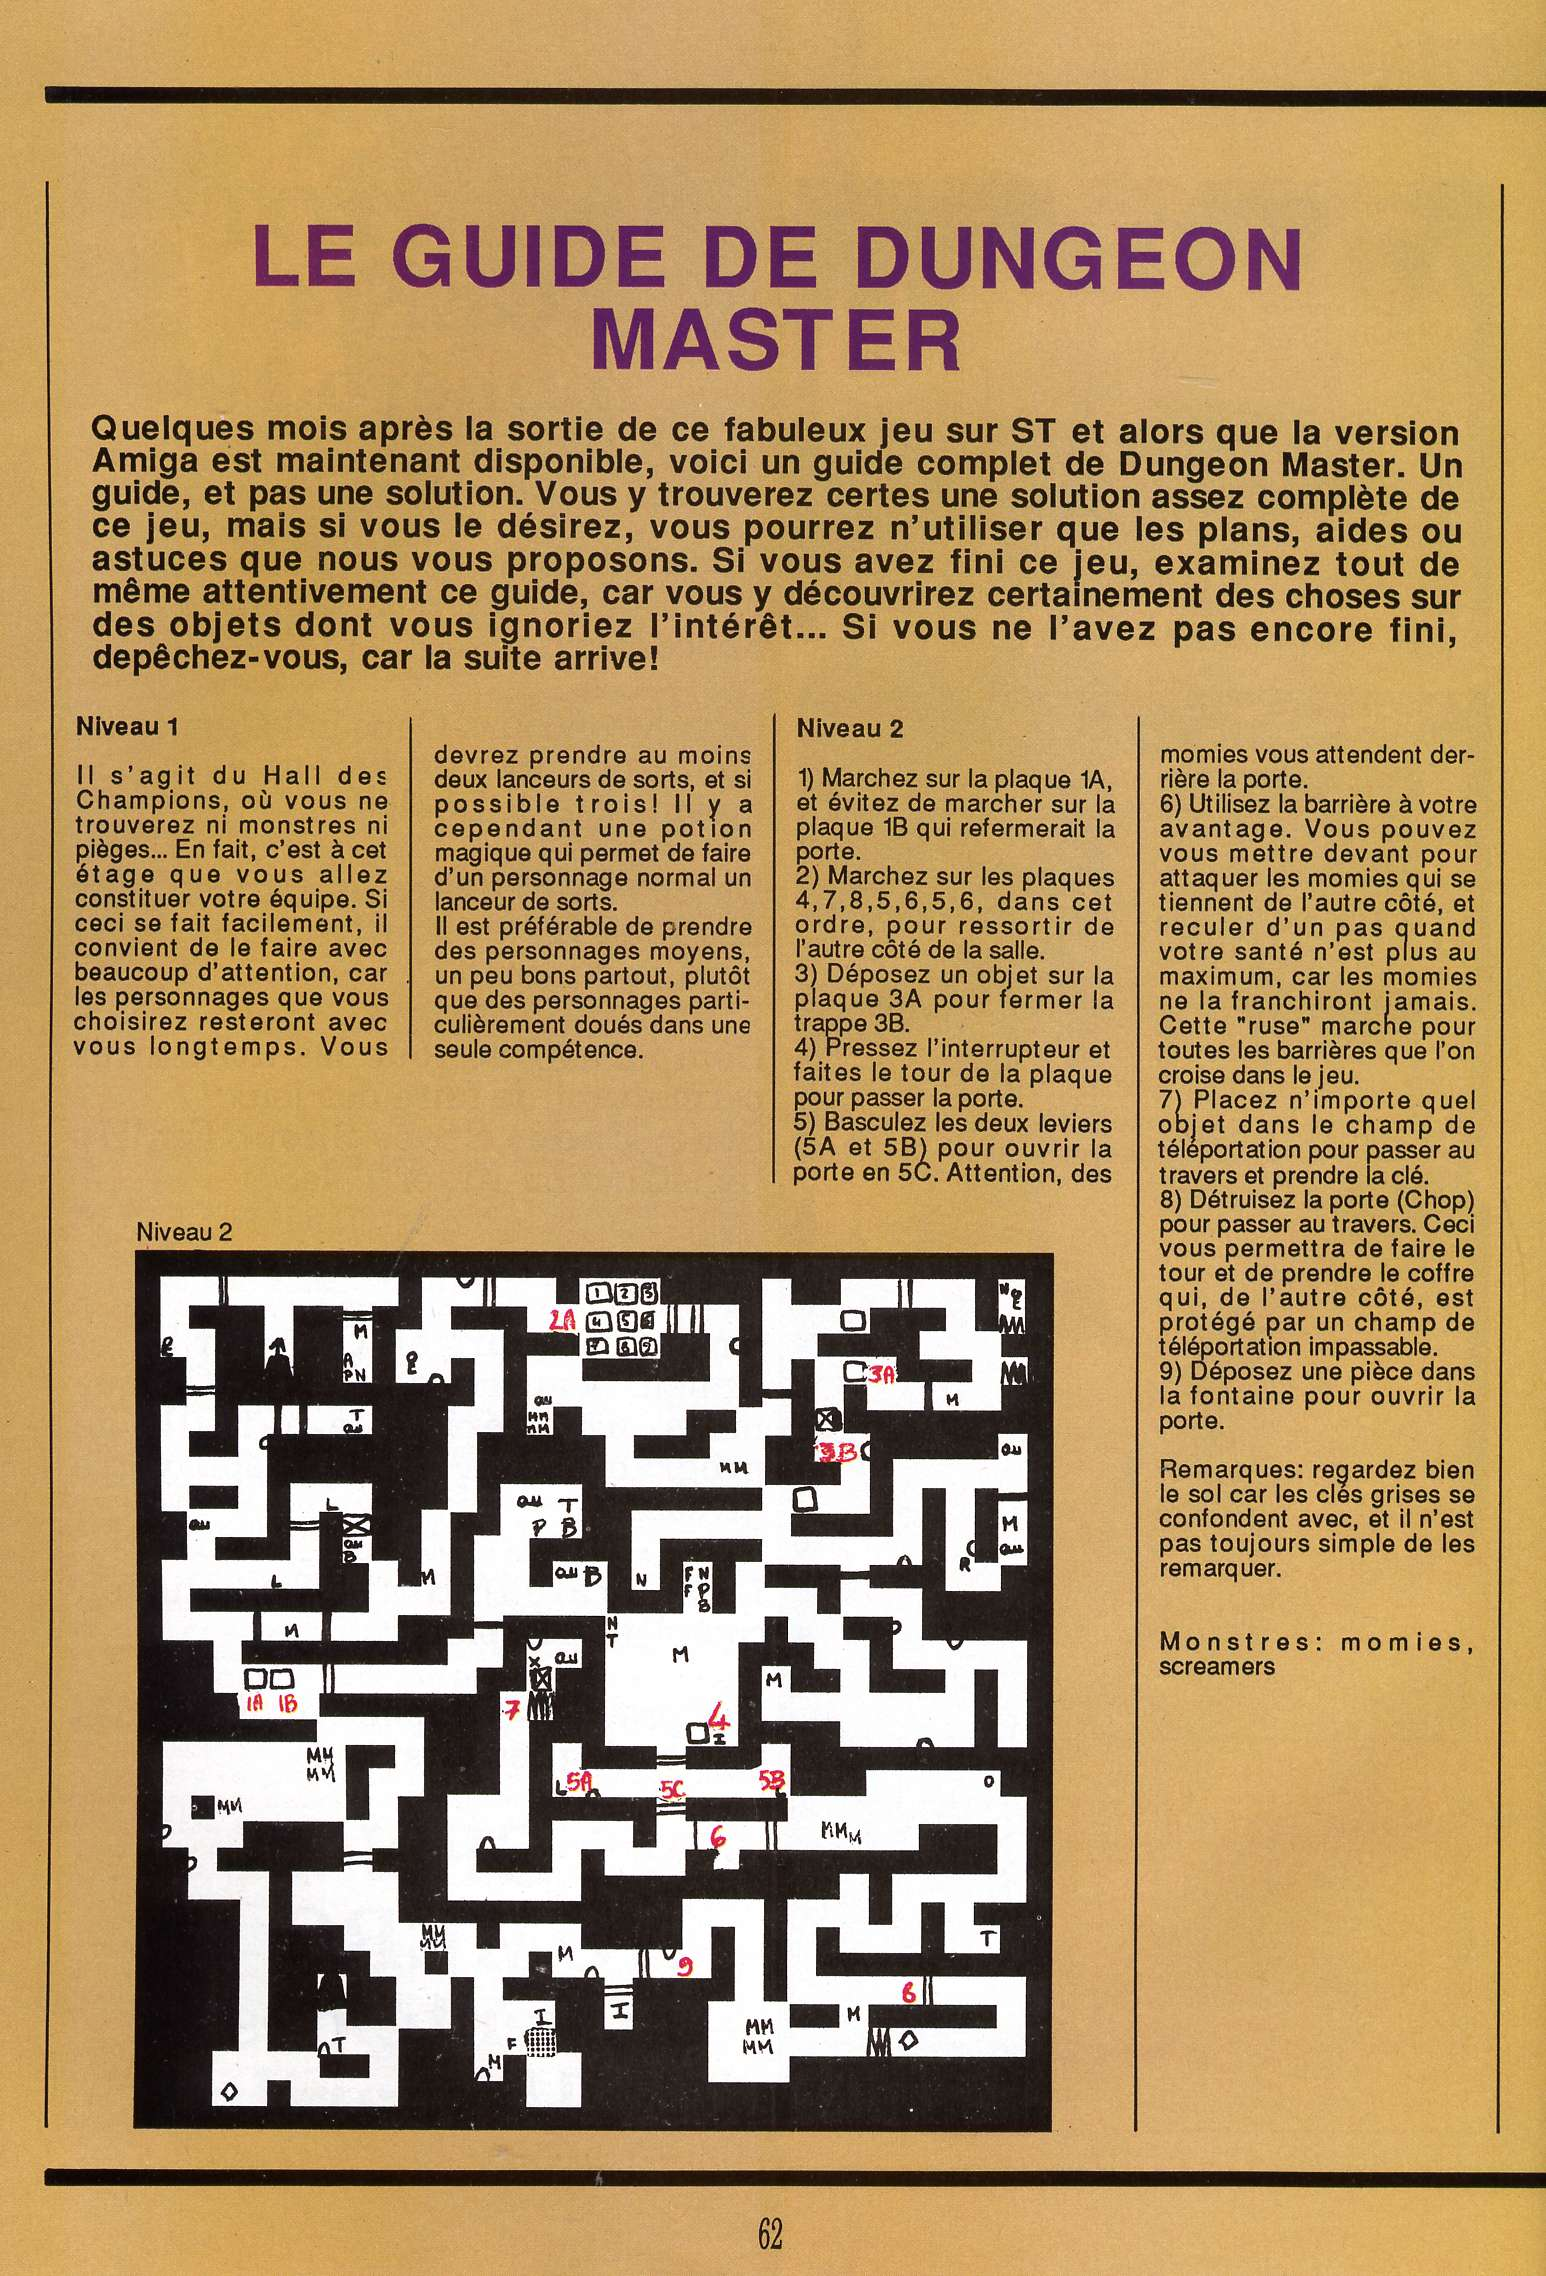 Dungeon Master for Atari ST Guide published in French magazine 'Gen4', Issue #9, March 1989, Page 62